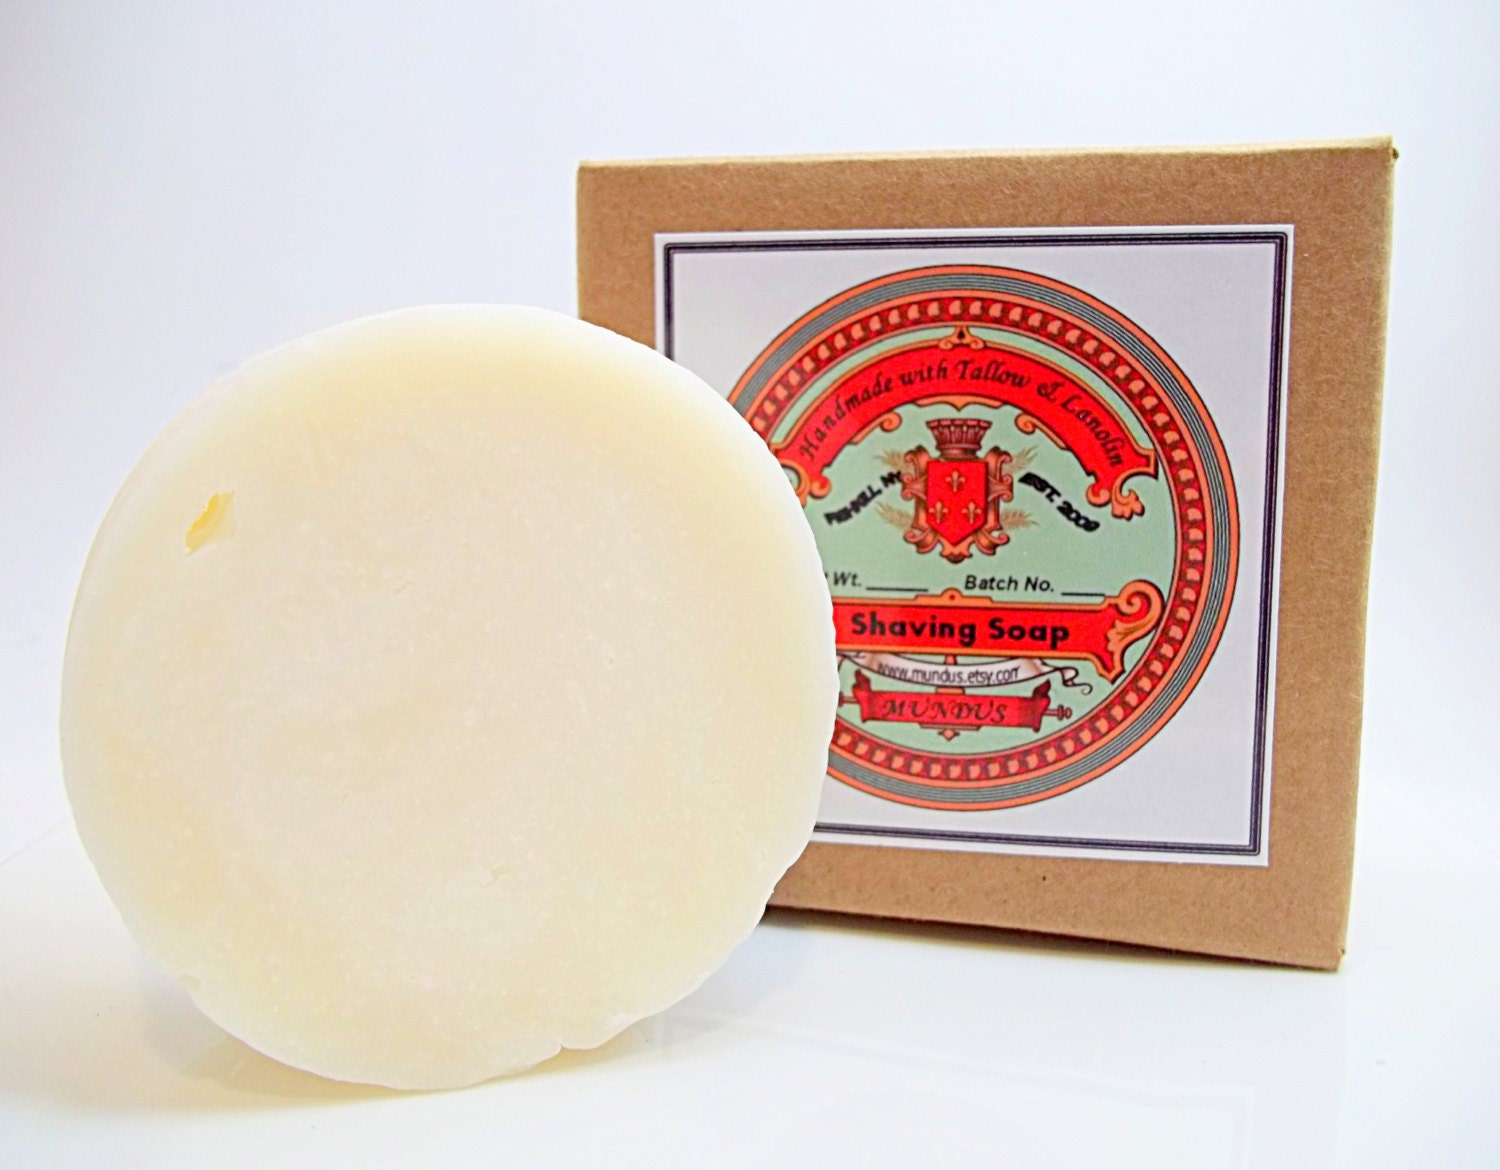 Set of Two (2)  Soaps - Ultimate Shaving Soap with Tallow & Lanolin - True Shaving Soap for Discerning Wet Shavers - Mundus